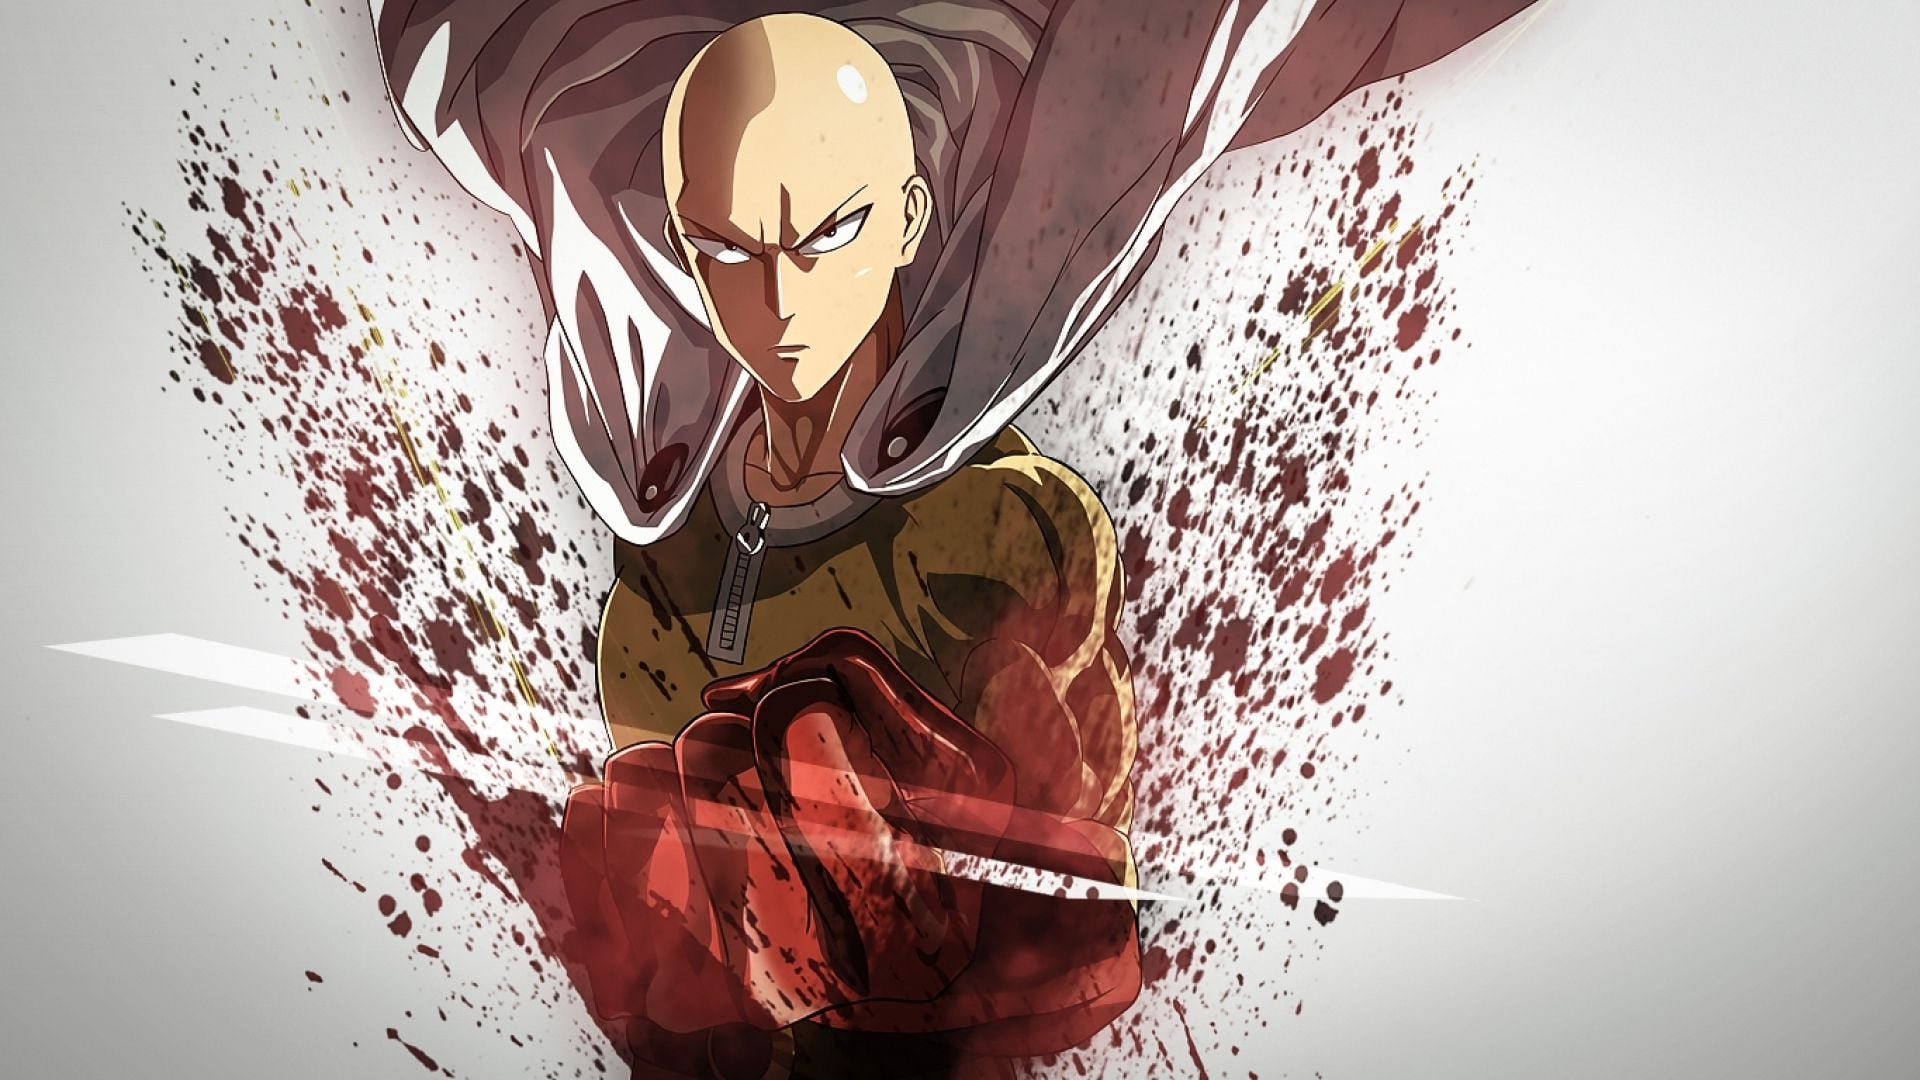 Saitama Wallpapers Top Free Saitama Backgrounds Wallpaperaccess